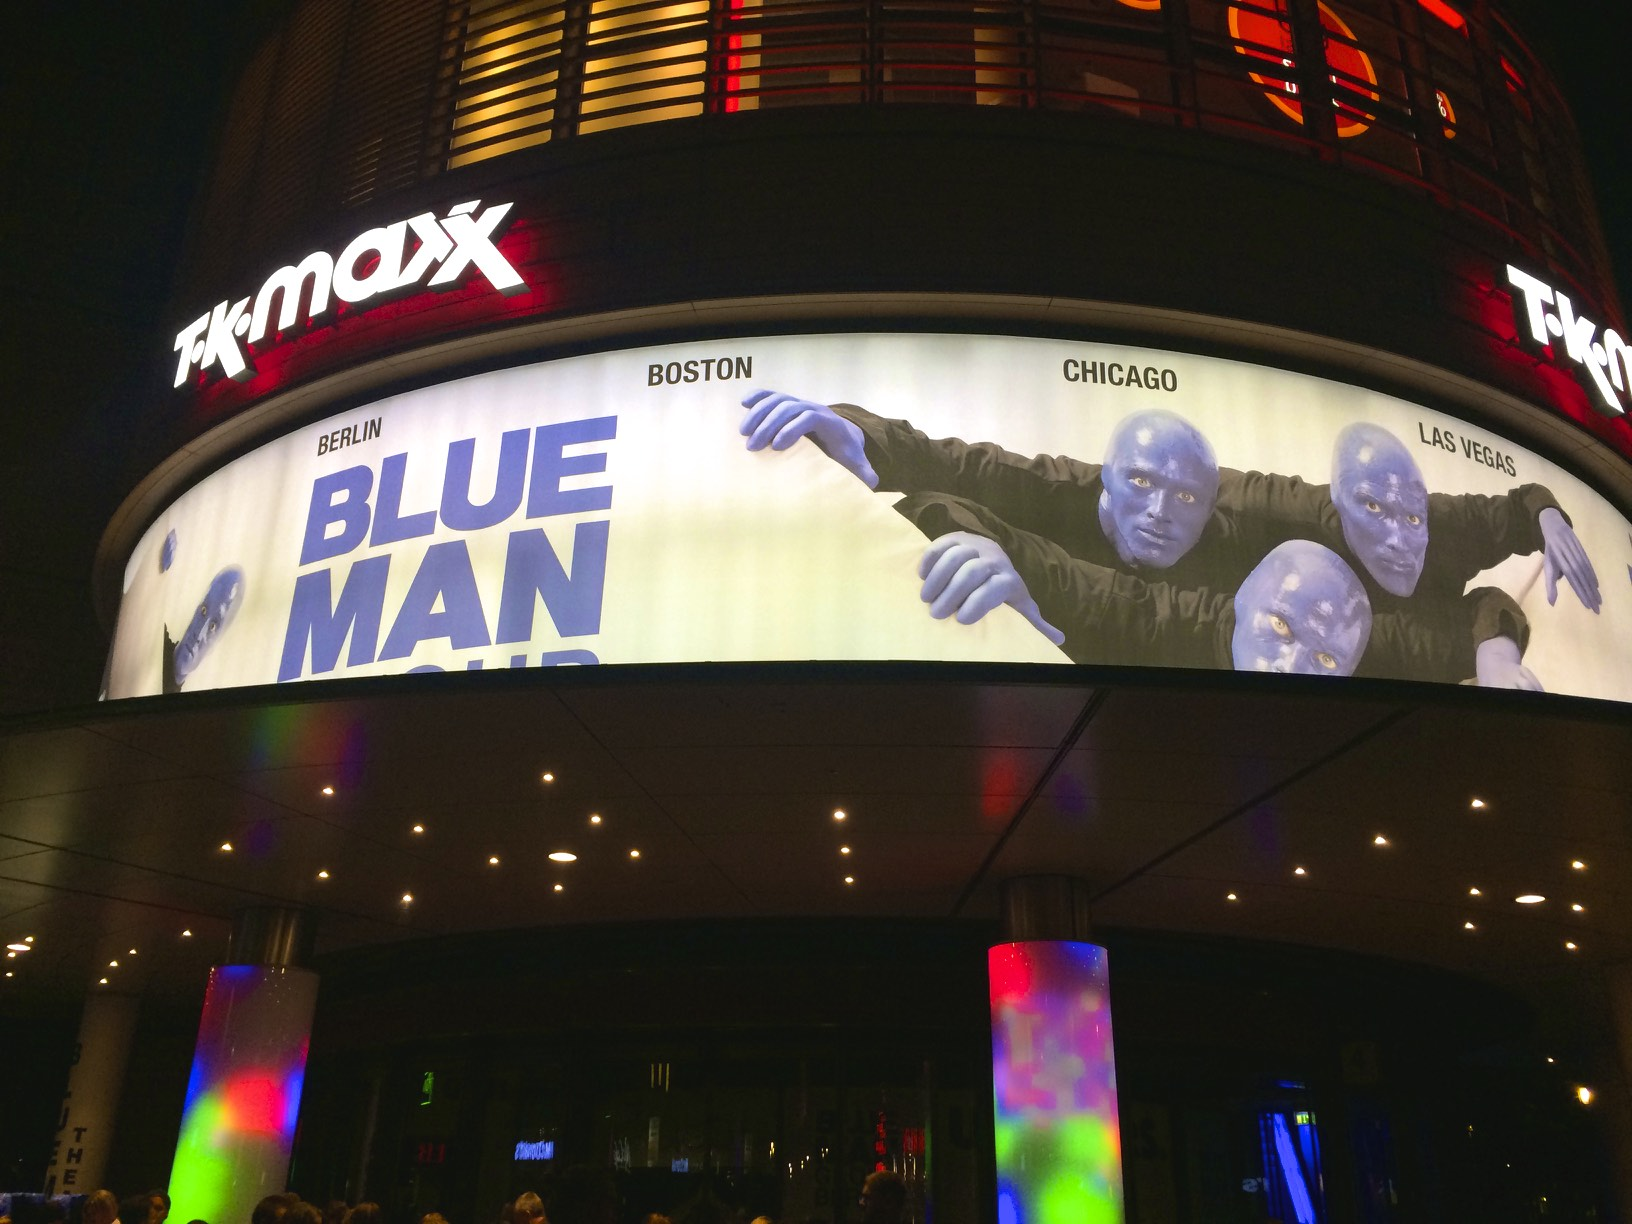 Blue Man Group Berlin - Must Go-See Performance!